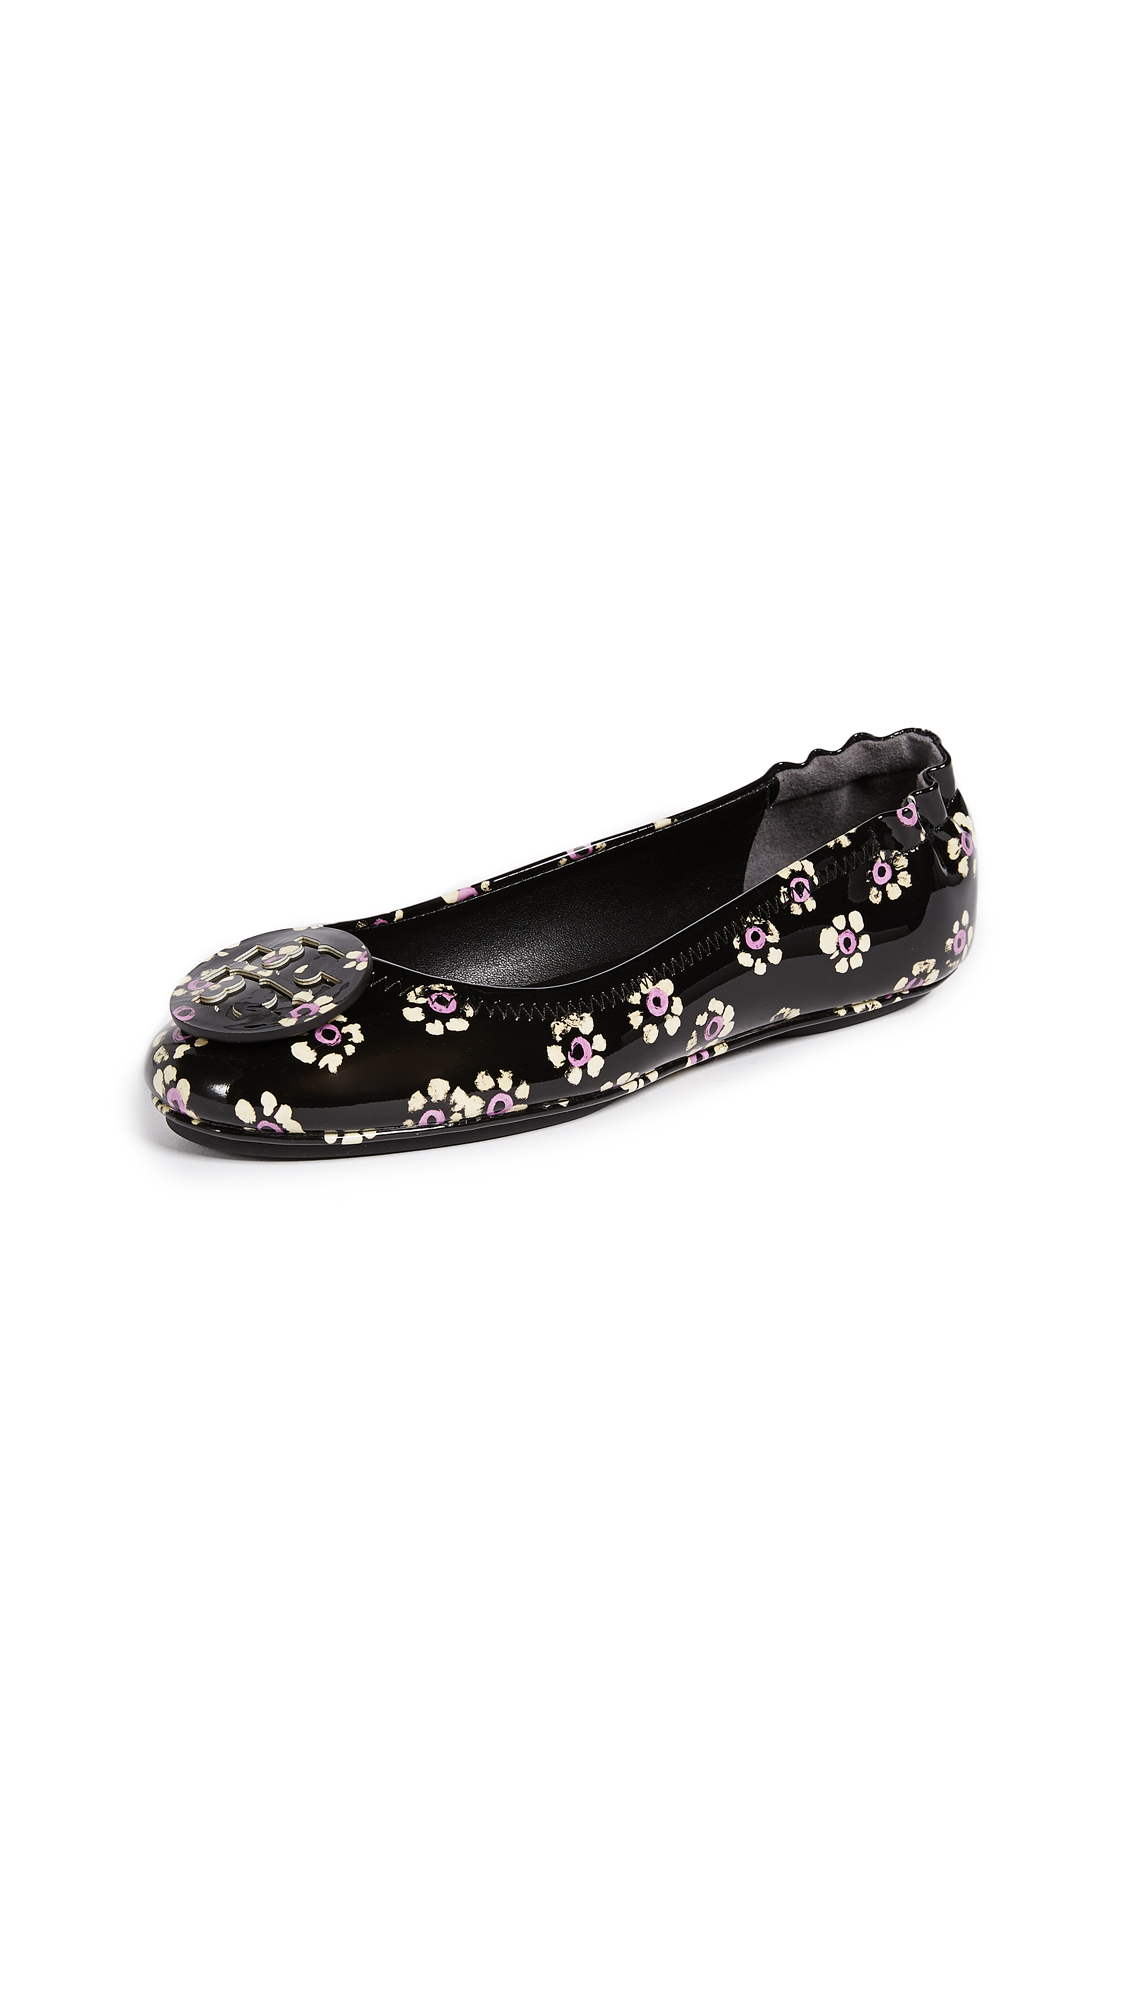 Tory Burch Minnie Travel Ballet Flats - Black Stamped Floral